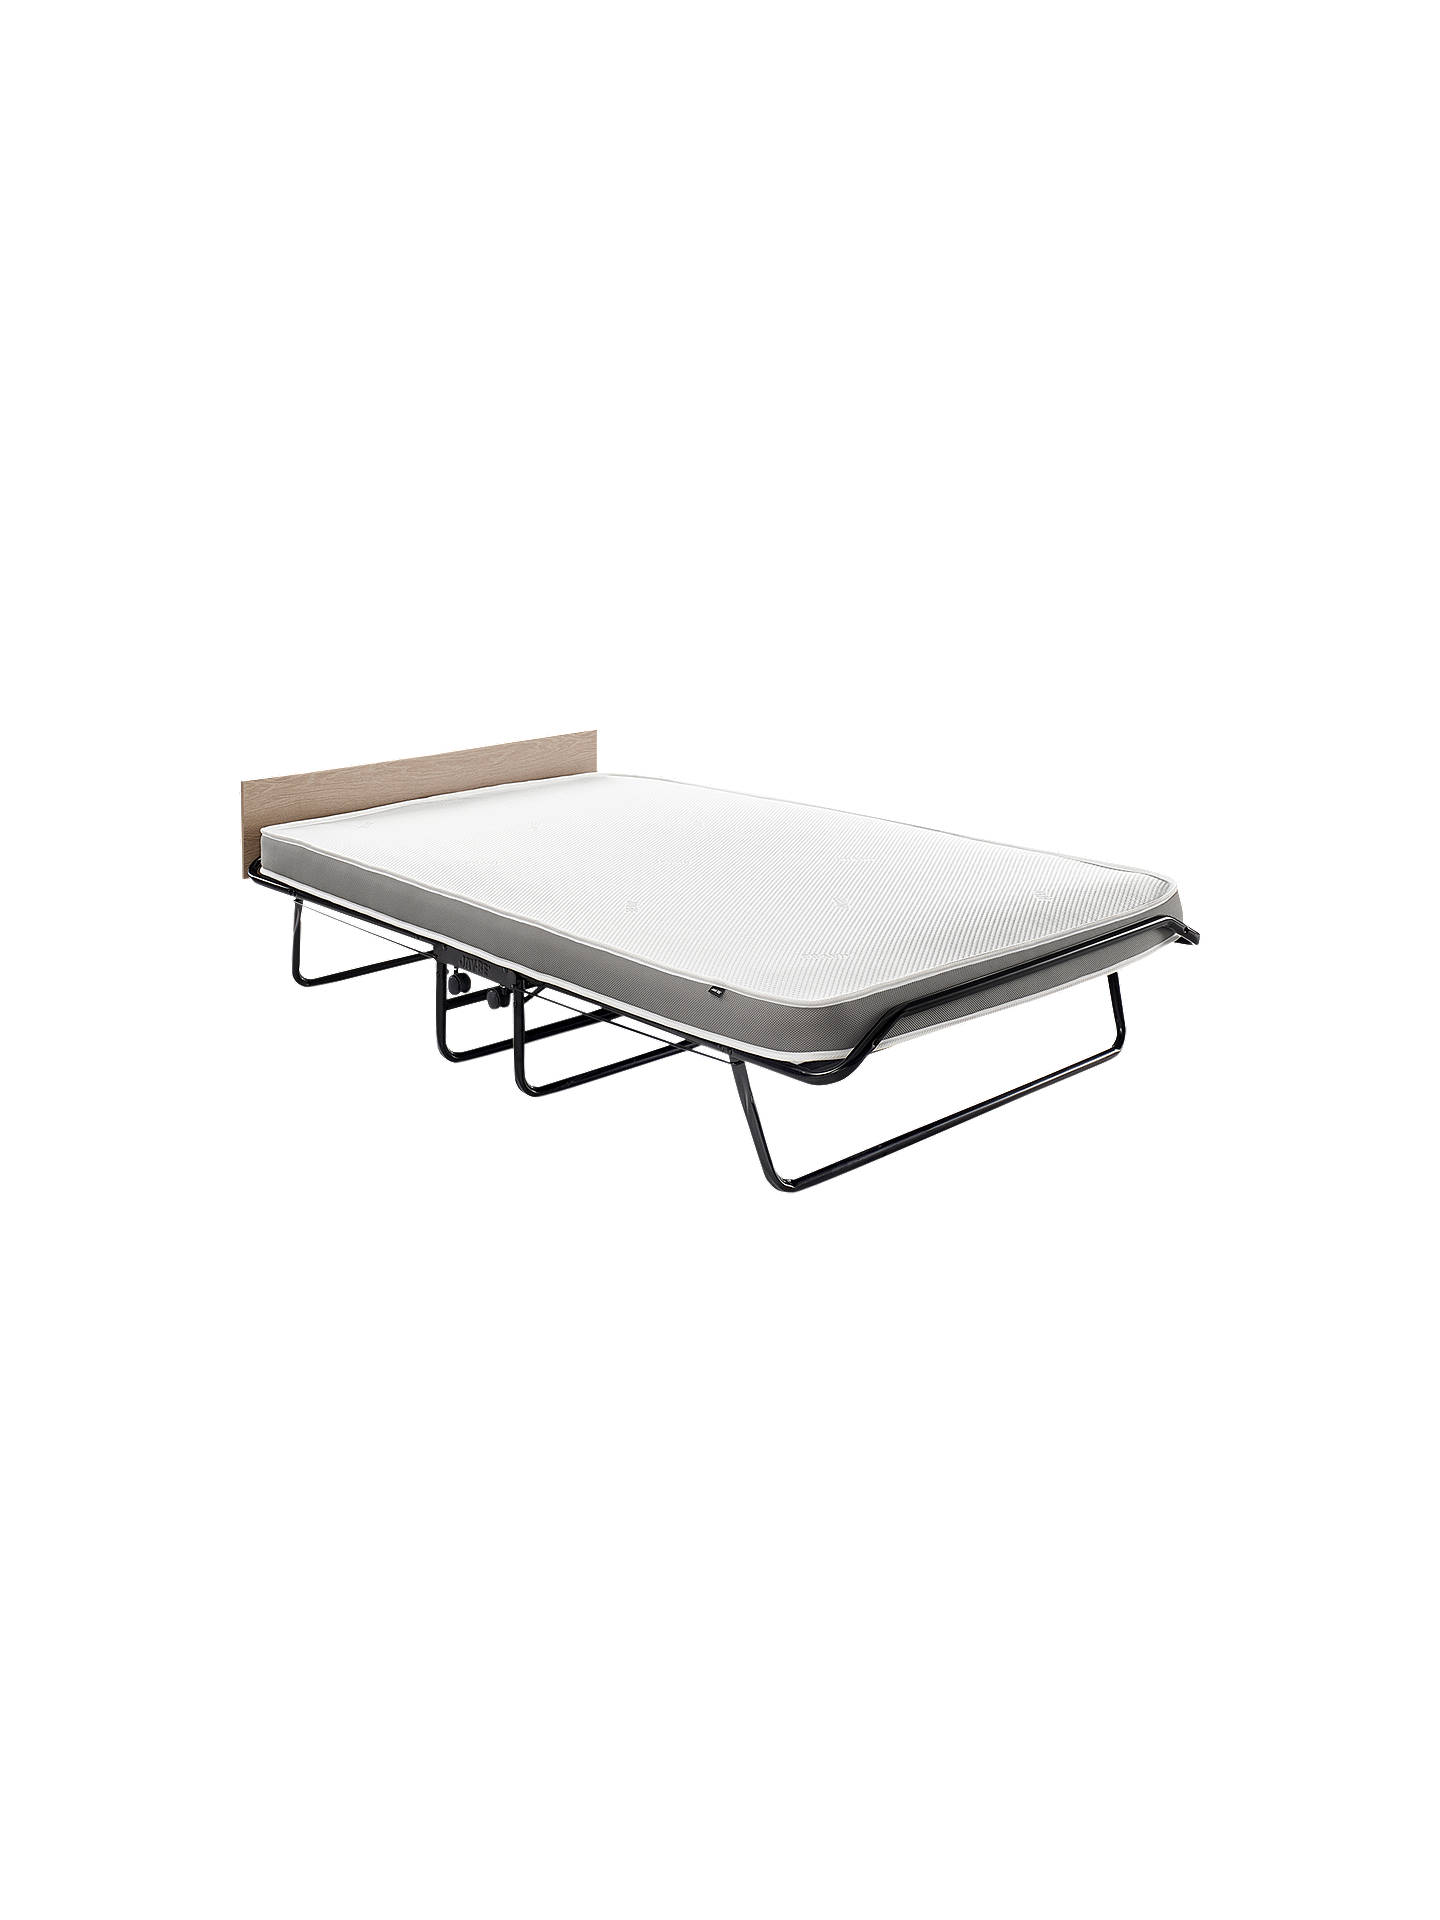 Jay Be Prestige Folding Bed With Airflow Pocket Sprung 400 Mattress